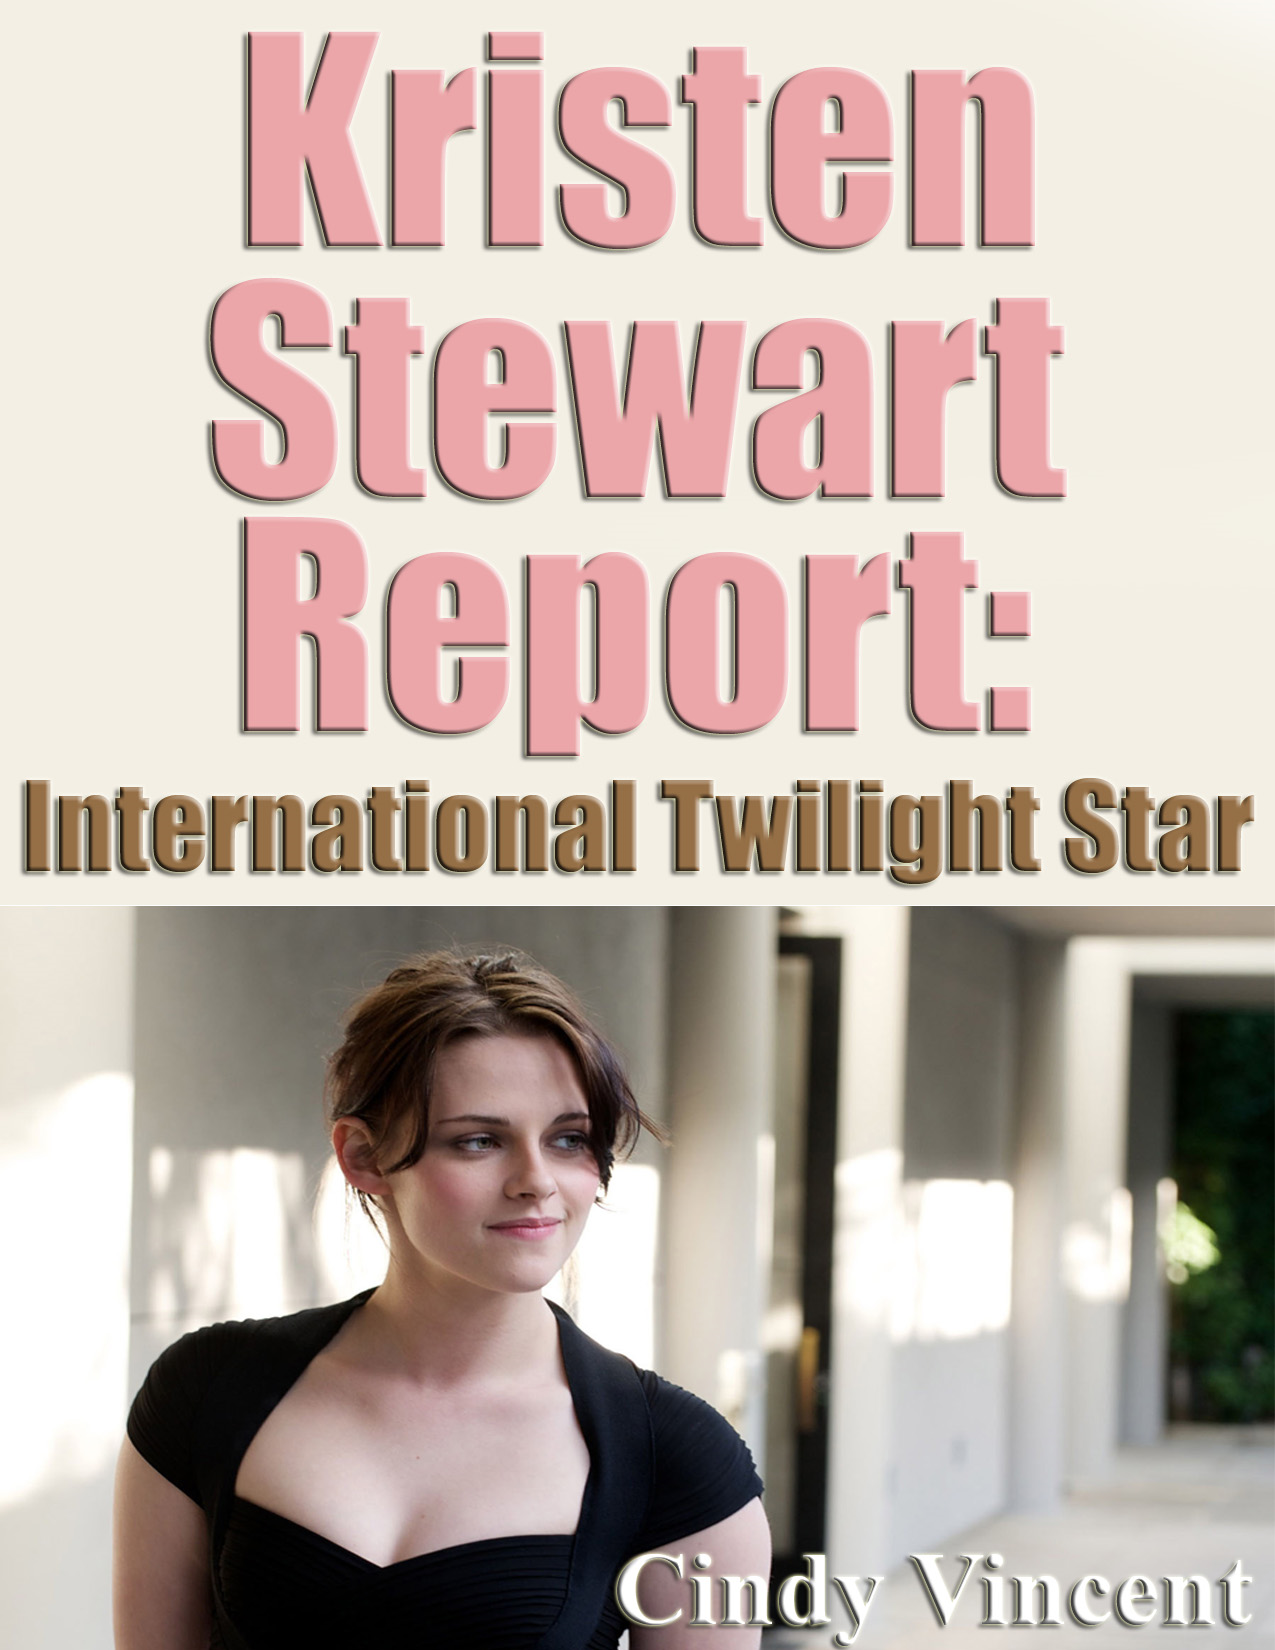 Kristen Stewart Report: International Twilight Star